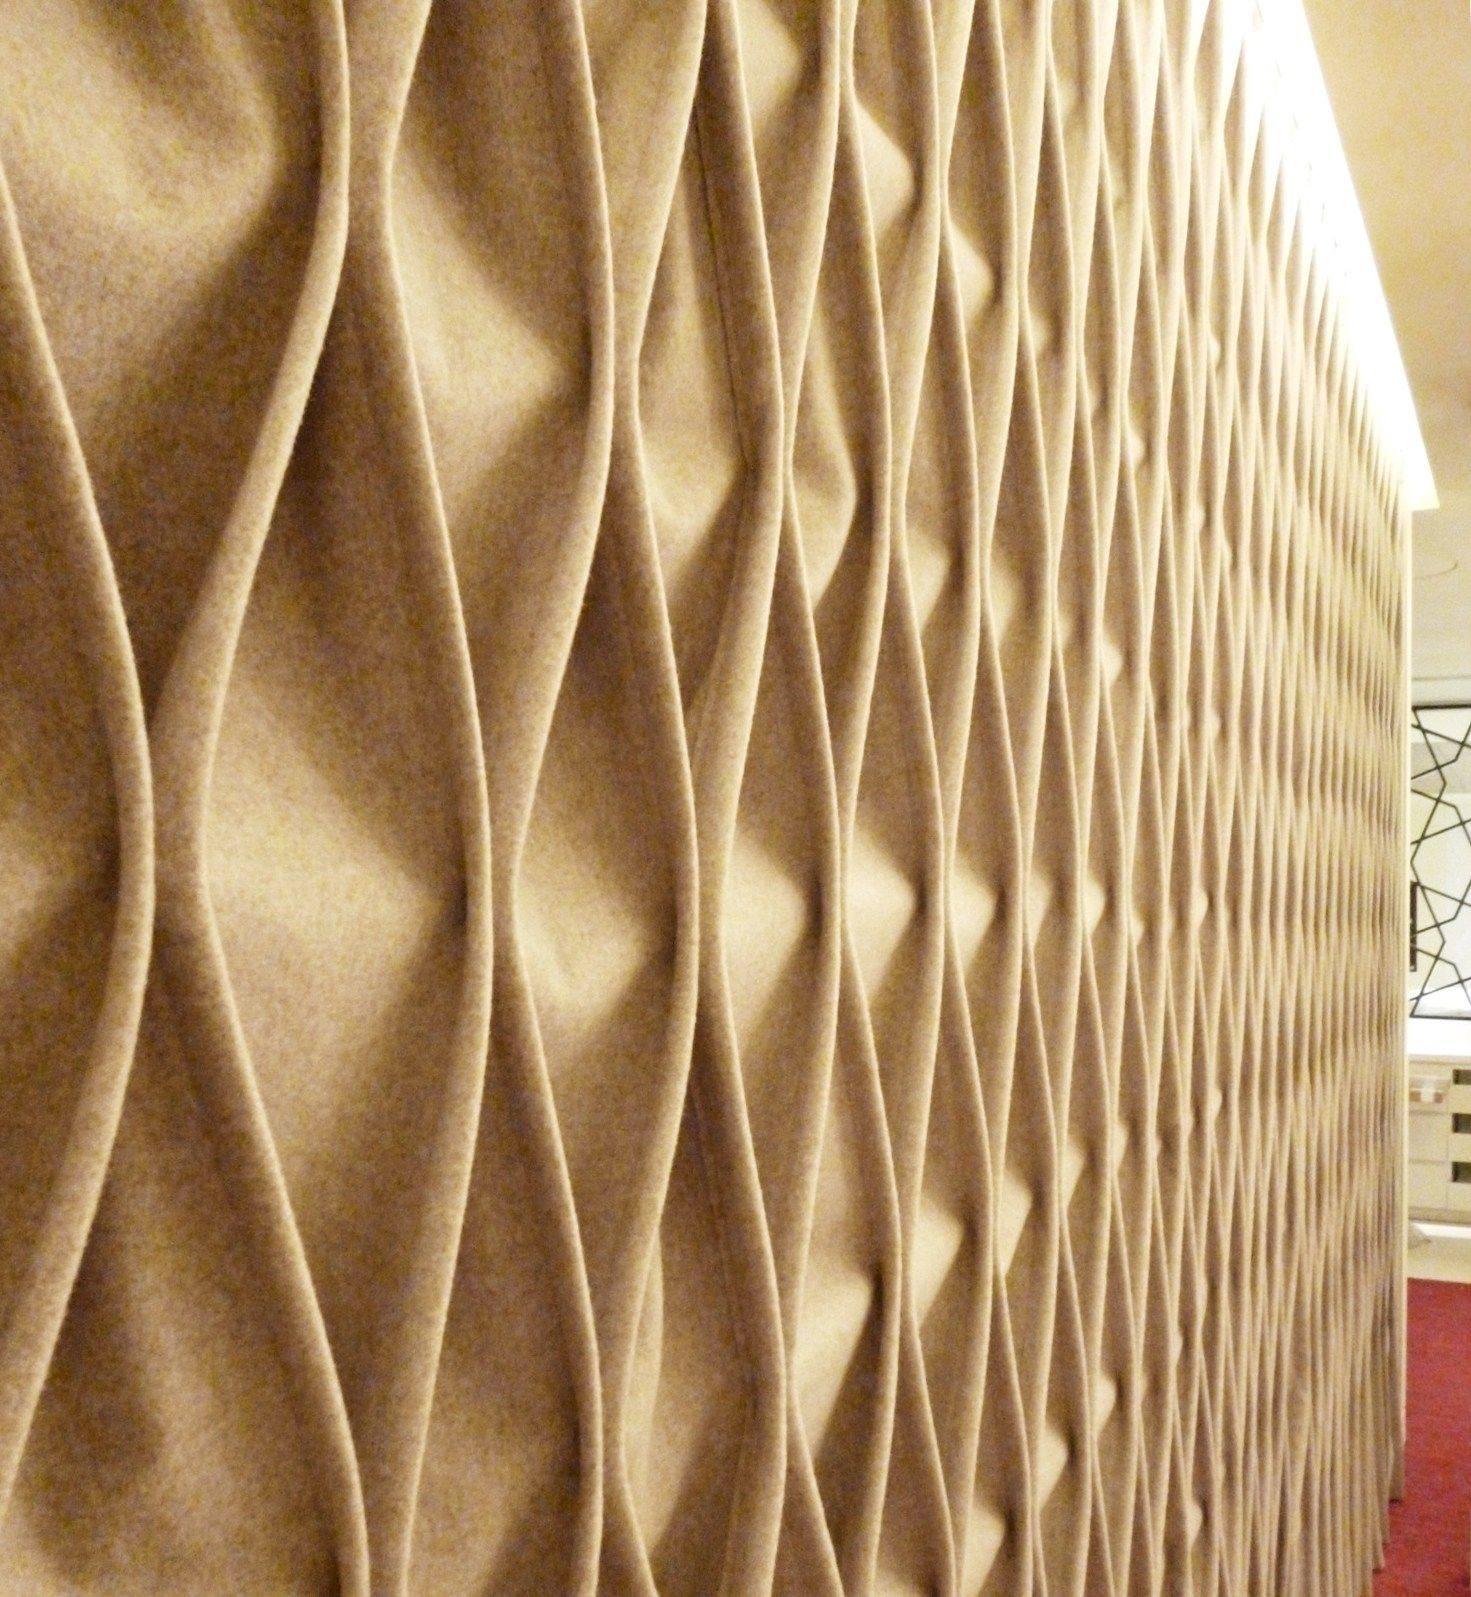 CABLE Fabric decorative acoustical panels by Anne Kyyrö Quinn design ...